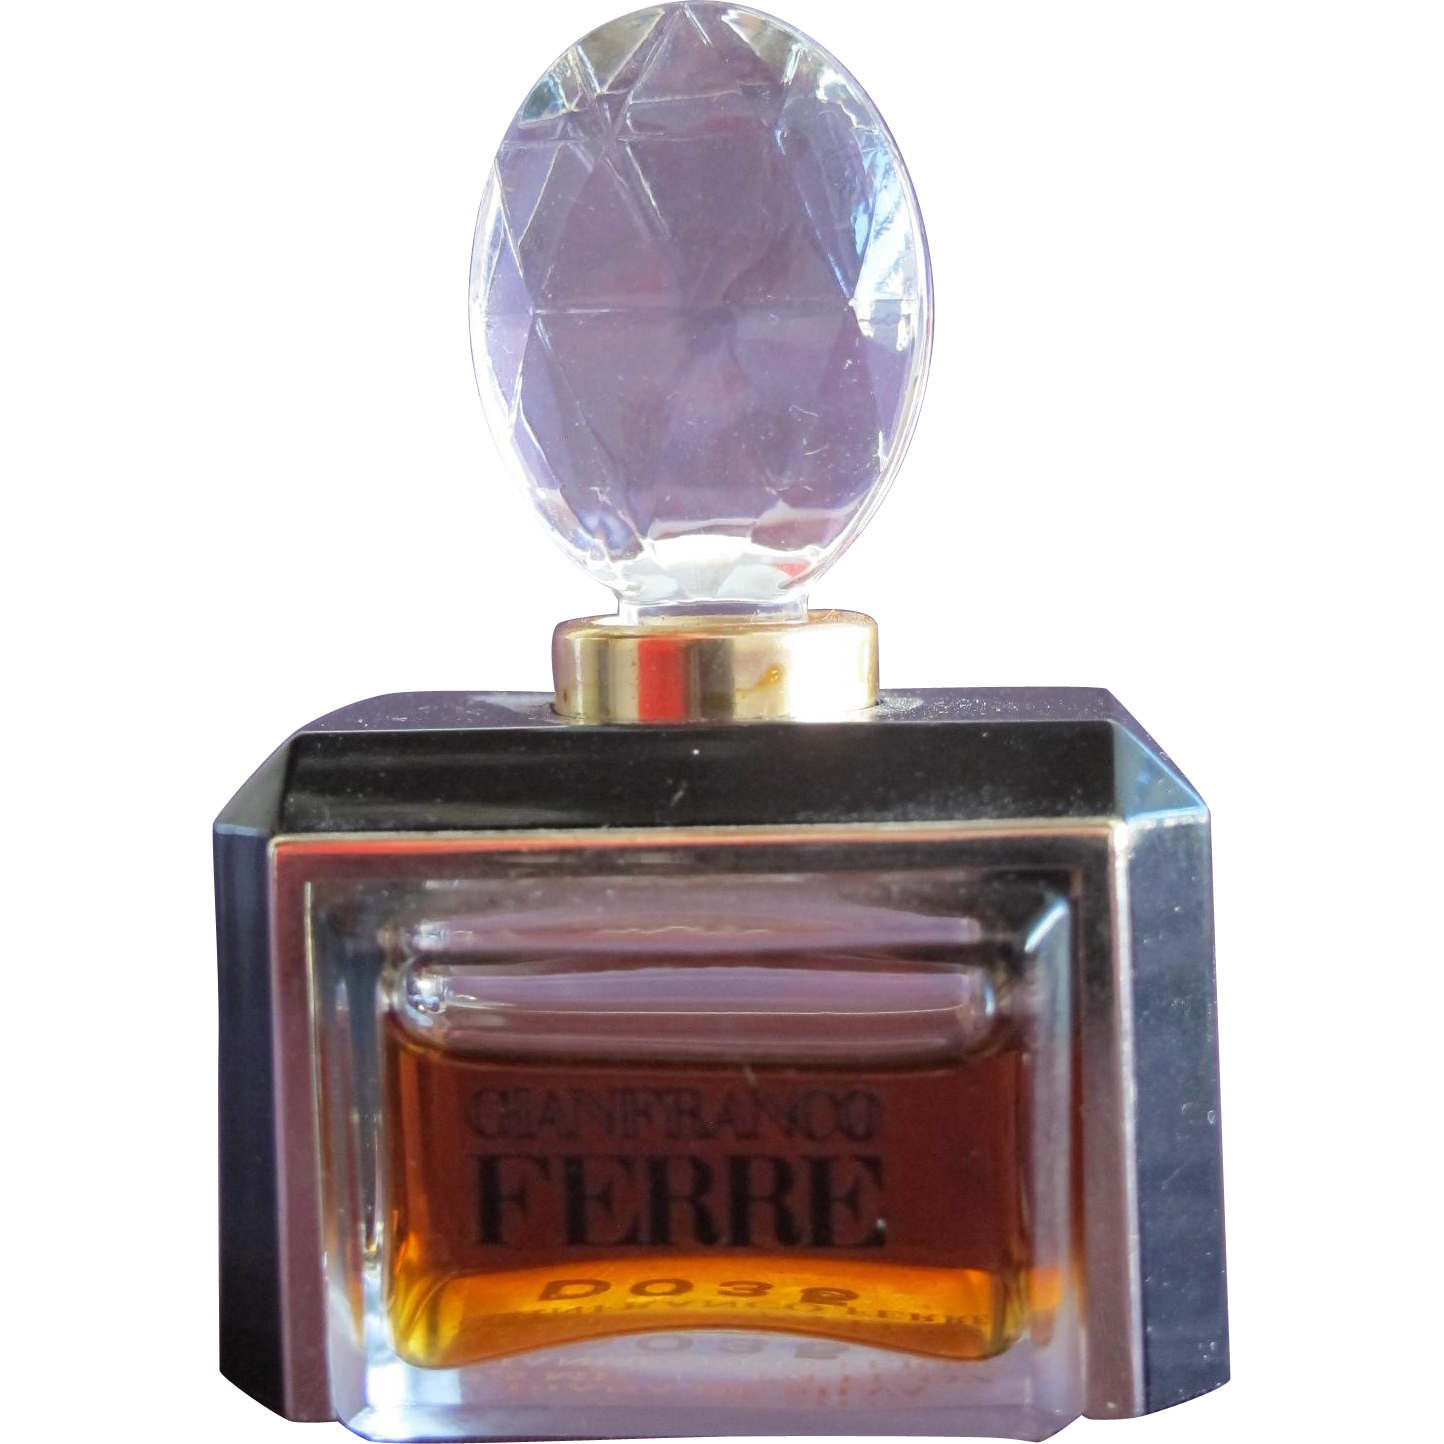 Perfume Bottle Extract Gianfranco Ferre for Women Rare Discontinued Commercial Parfum